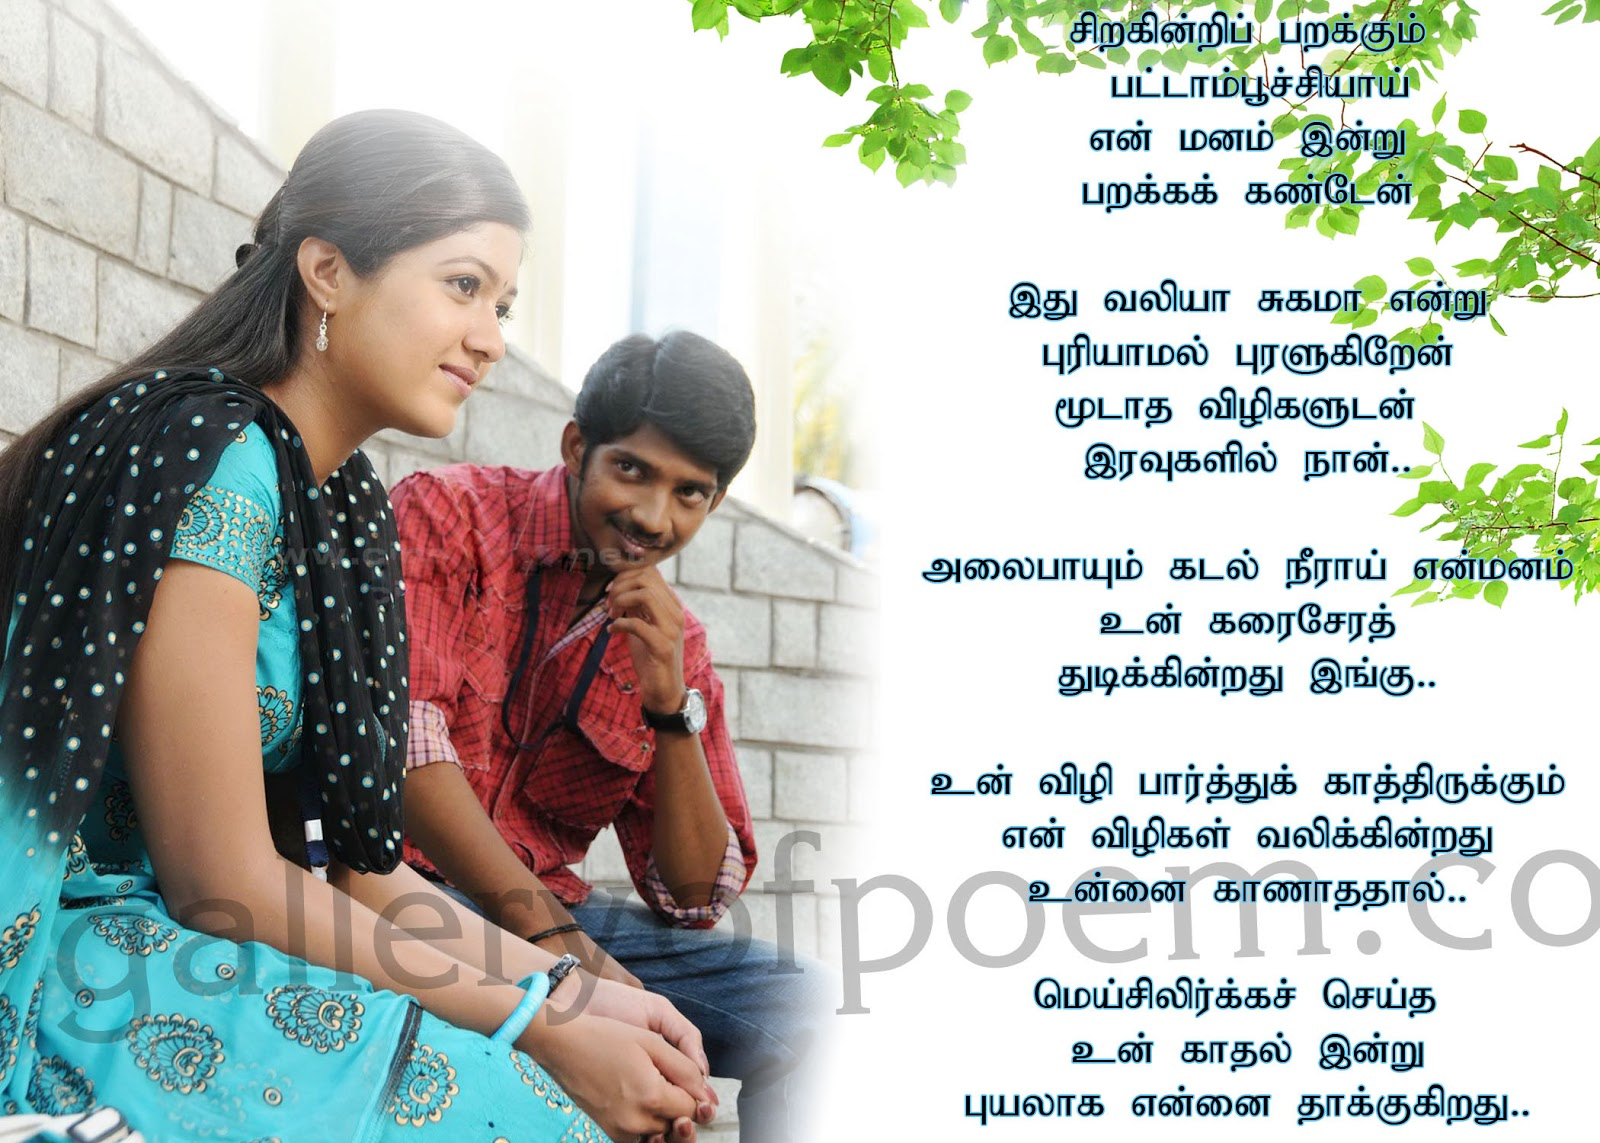 jiffriya jeely poems,Tamil Kavithai,Tamil Puthu Kavithai,Puthu Kavithaigal,Tamil Kadhal Kavithai,Traditional Tamil Kavithai,Kavithaigal,Hycoo Kavithai,Tamil Poem,Tamil Poetry,latest tamil puthu kavithai in tamil, tamil poem in tamil, tamil poetry in tamil, tamil puthu kavithai, tamil kavithai gallery, tamil kathal kavithai, tamil song lyrics,tamil hycoo,tamil Greetings, tamil Movie actor and actress picture gallery,Greetings in tamil, Poems in tamil,Tamil Kavithaigal,Kavithai,poems of love,tamil poems,kavithai in tamil,kavithai tamil,kadhal kavithai in tamil,tamil kavithai in tamil